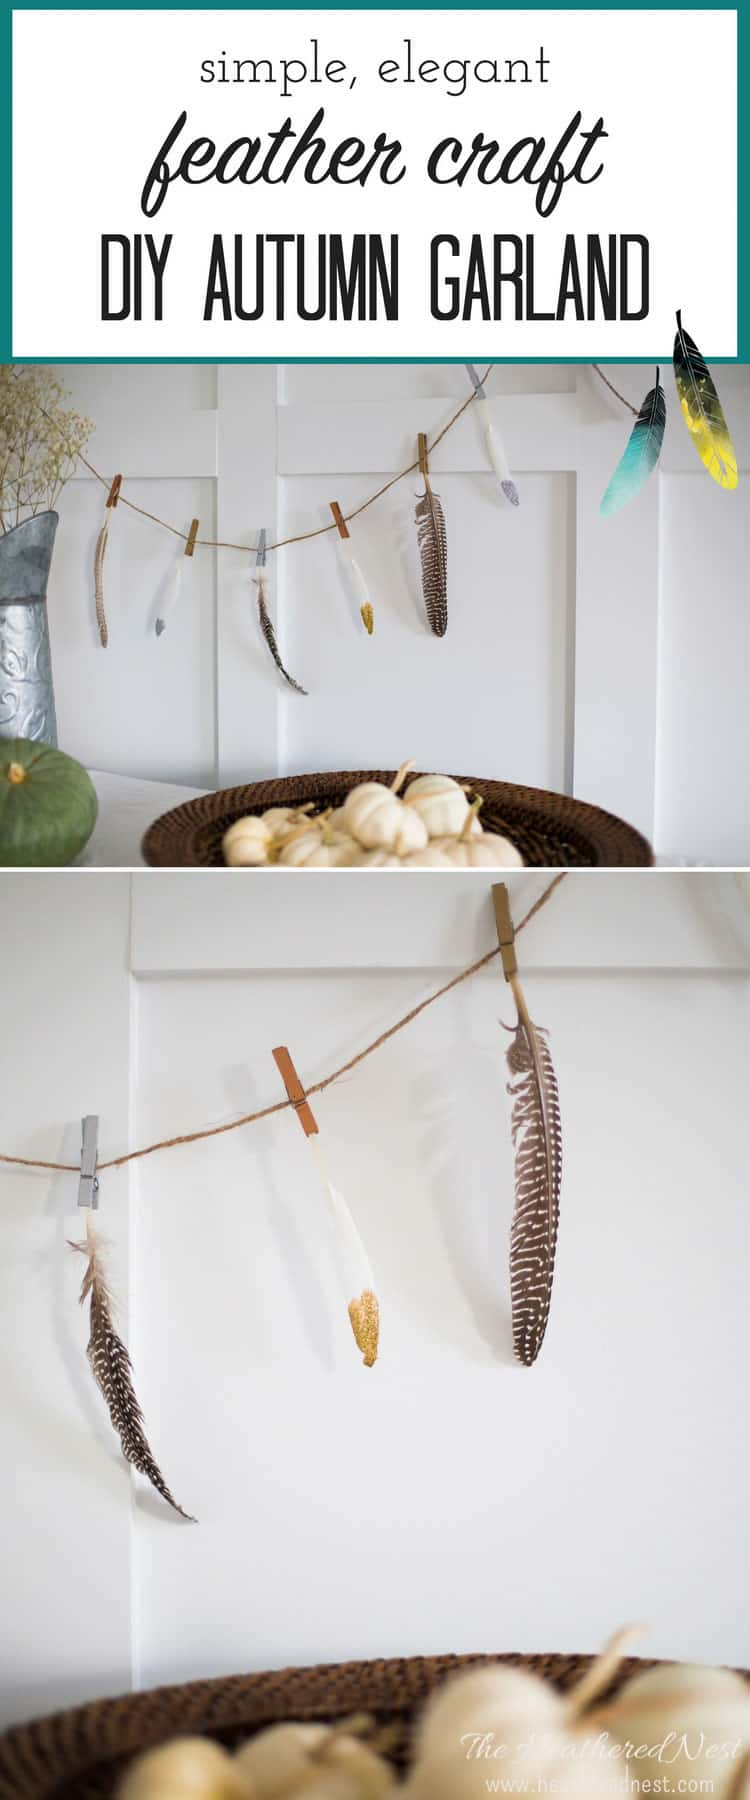 So beautifully simple!! Definitely trying this fall garland/feather craft this season!!